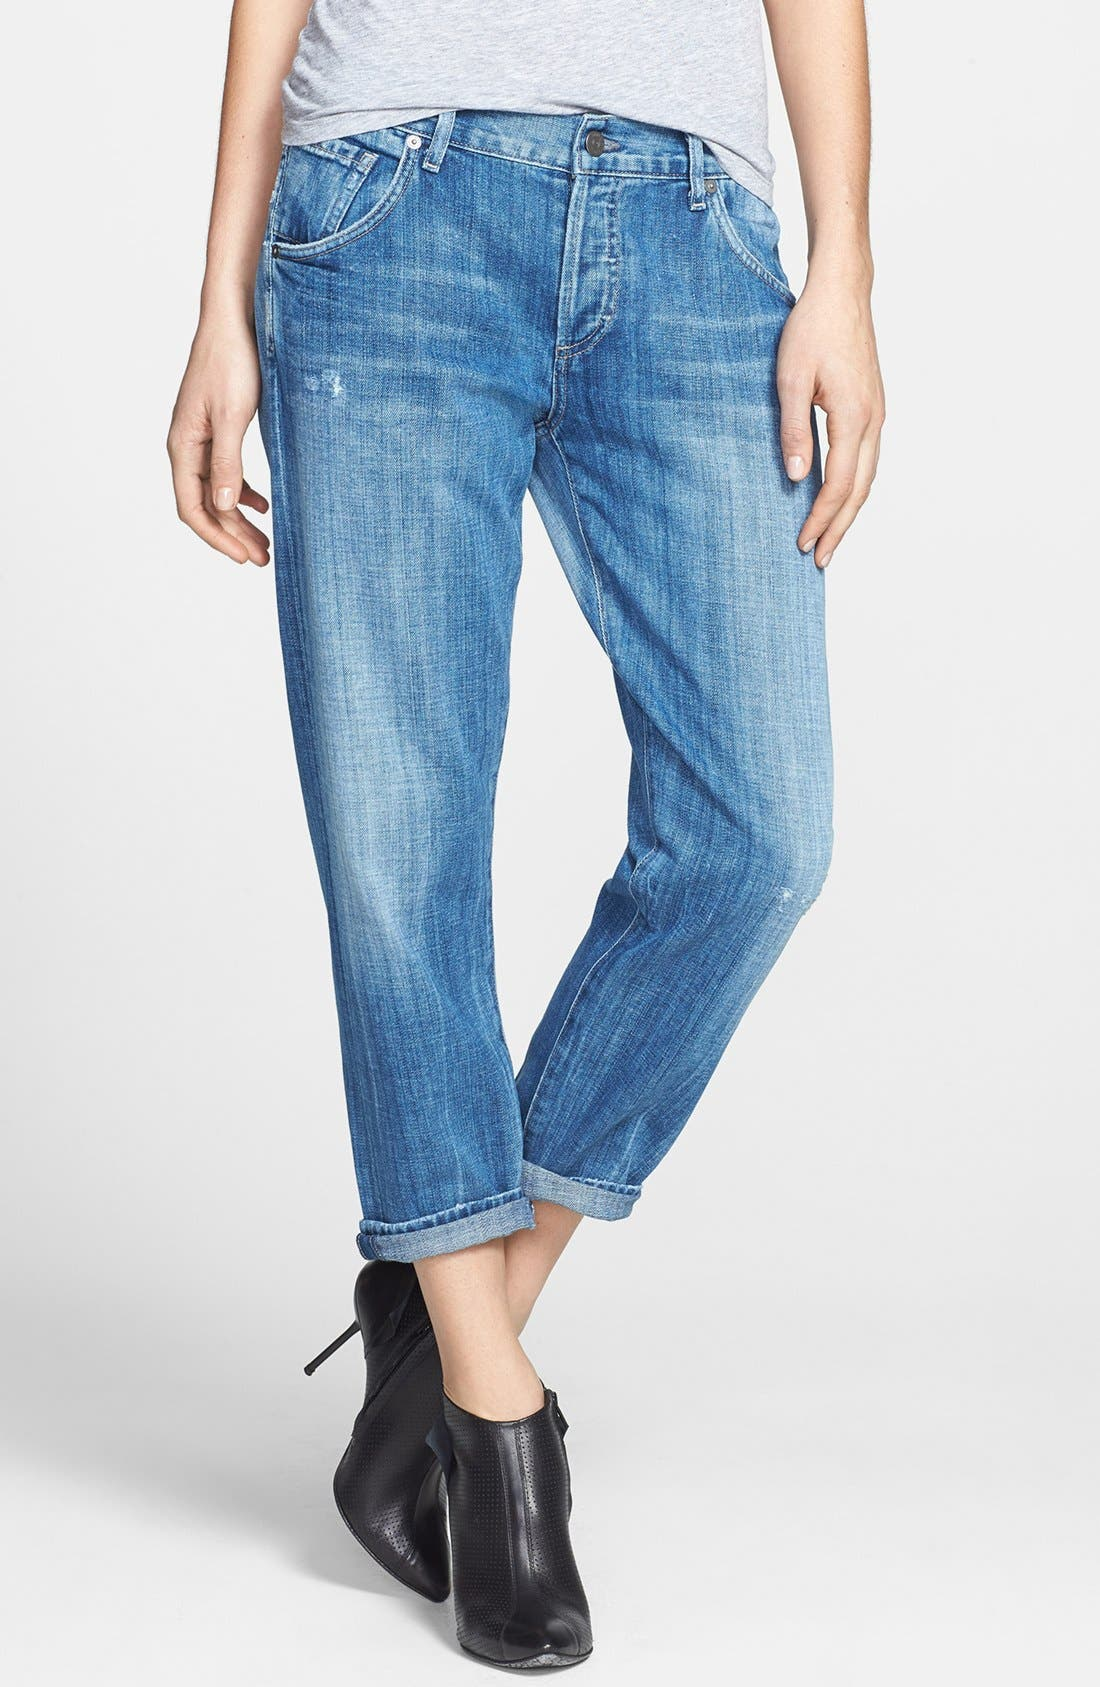 Alternate Image 1 Selected - Citizens of Humanity 'Skylar' Crop Boyfriend Jeans (Circa)